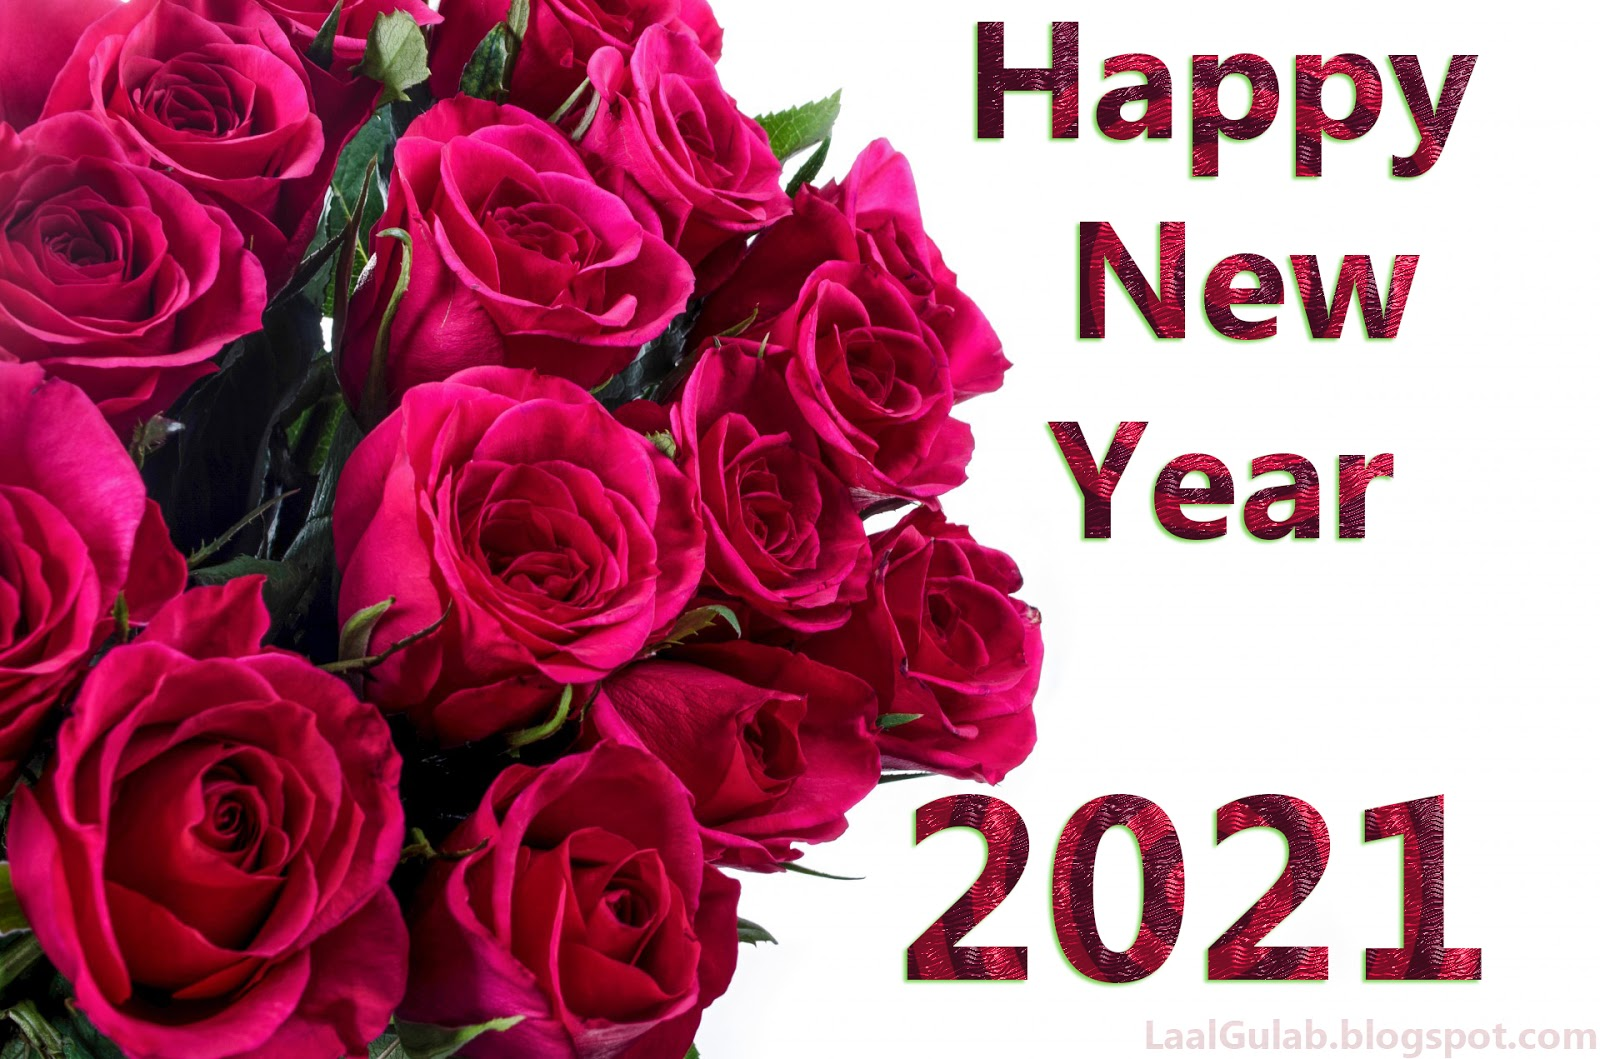 Happy New Year 2021 Wallpapers HD Download Free | Happy ...